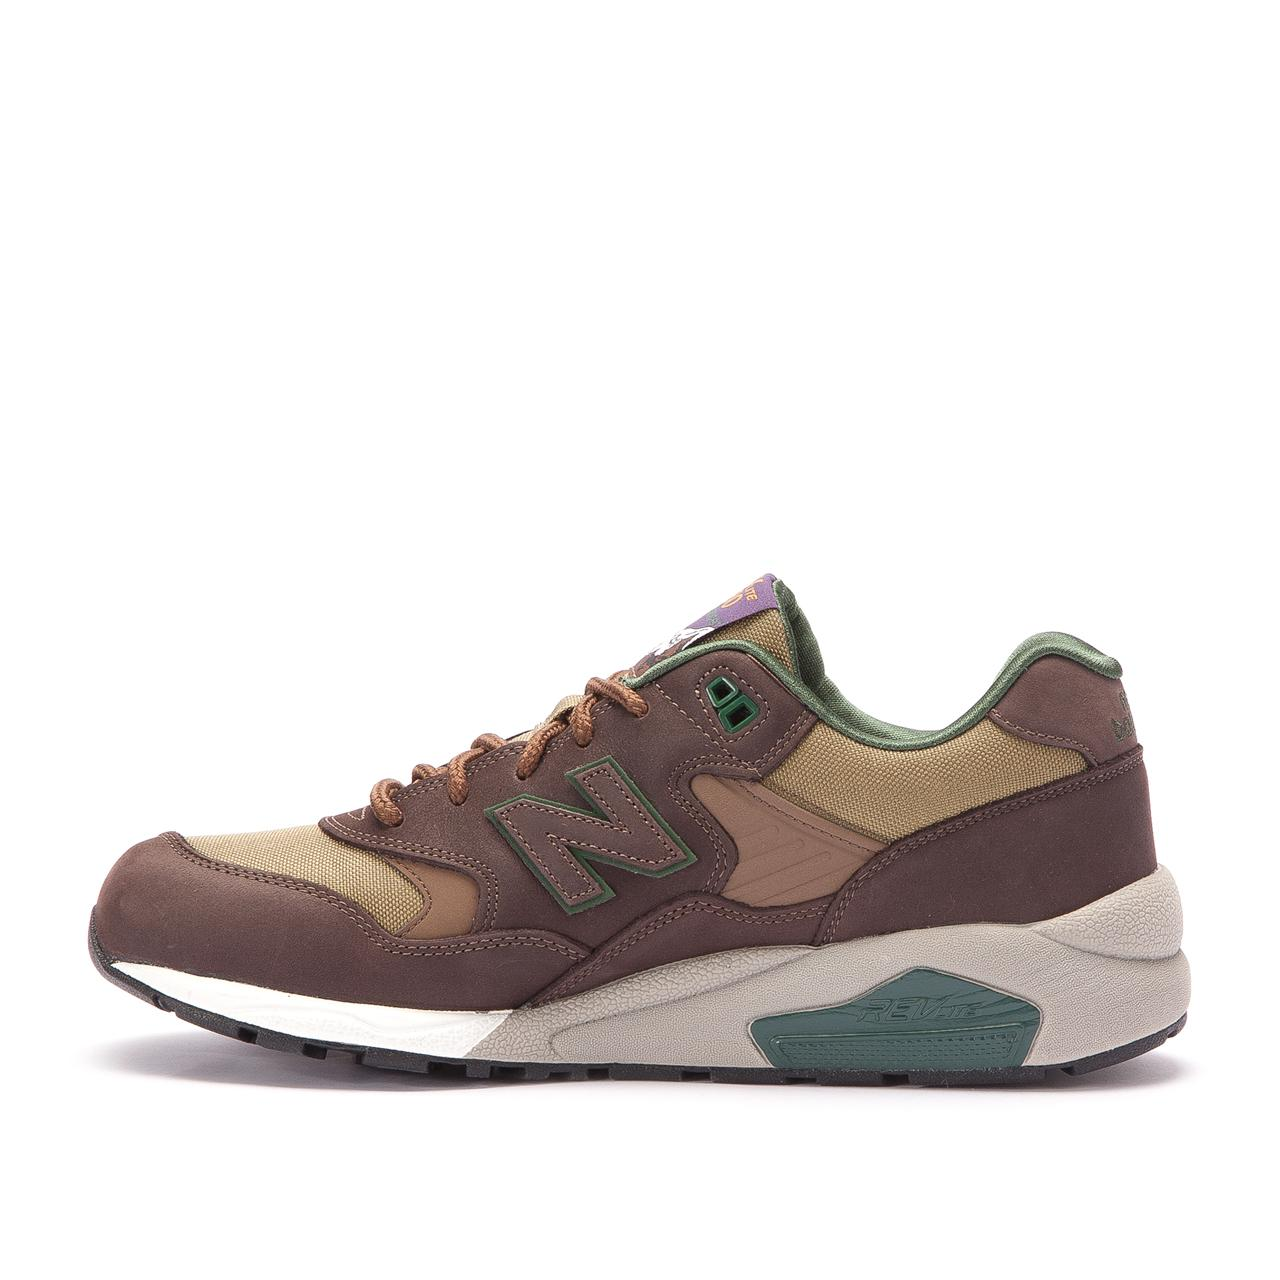 new arrival 25ed9 2ccb5 New Balance - Brown Mrt 580 Lb for Men - Lyst